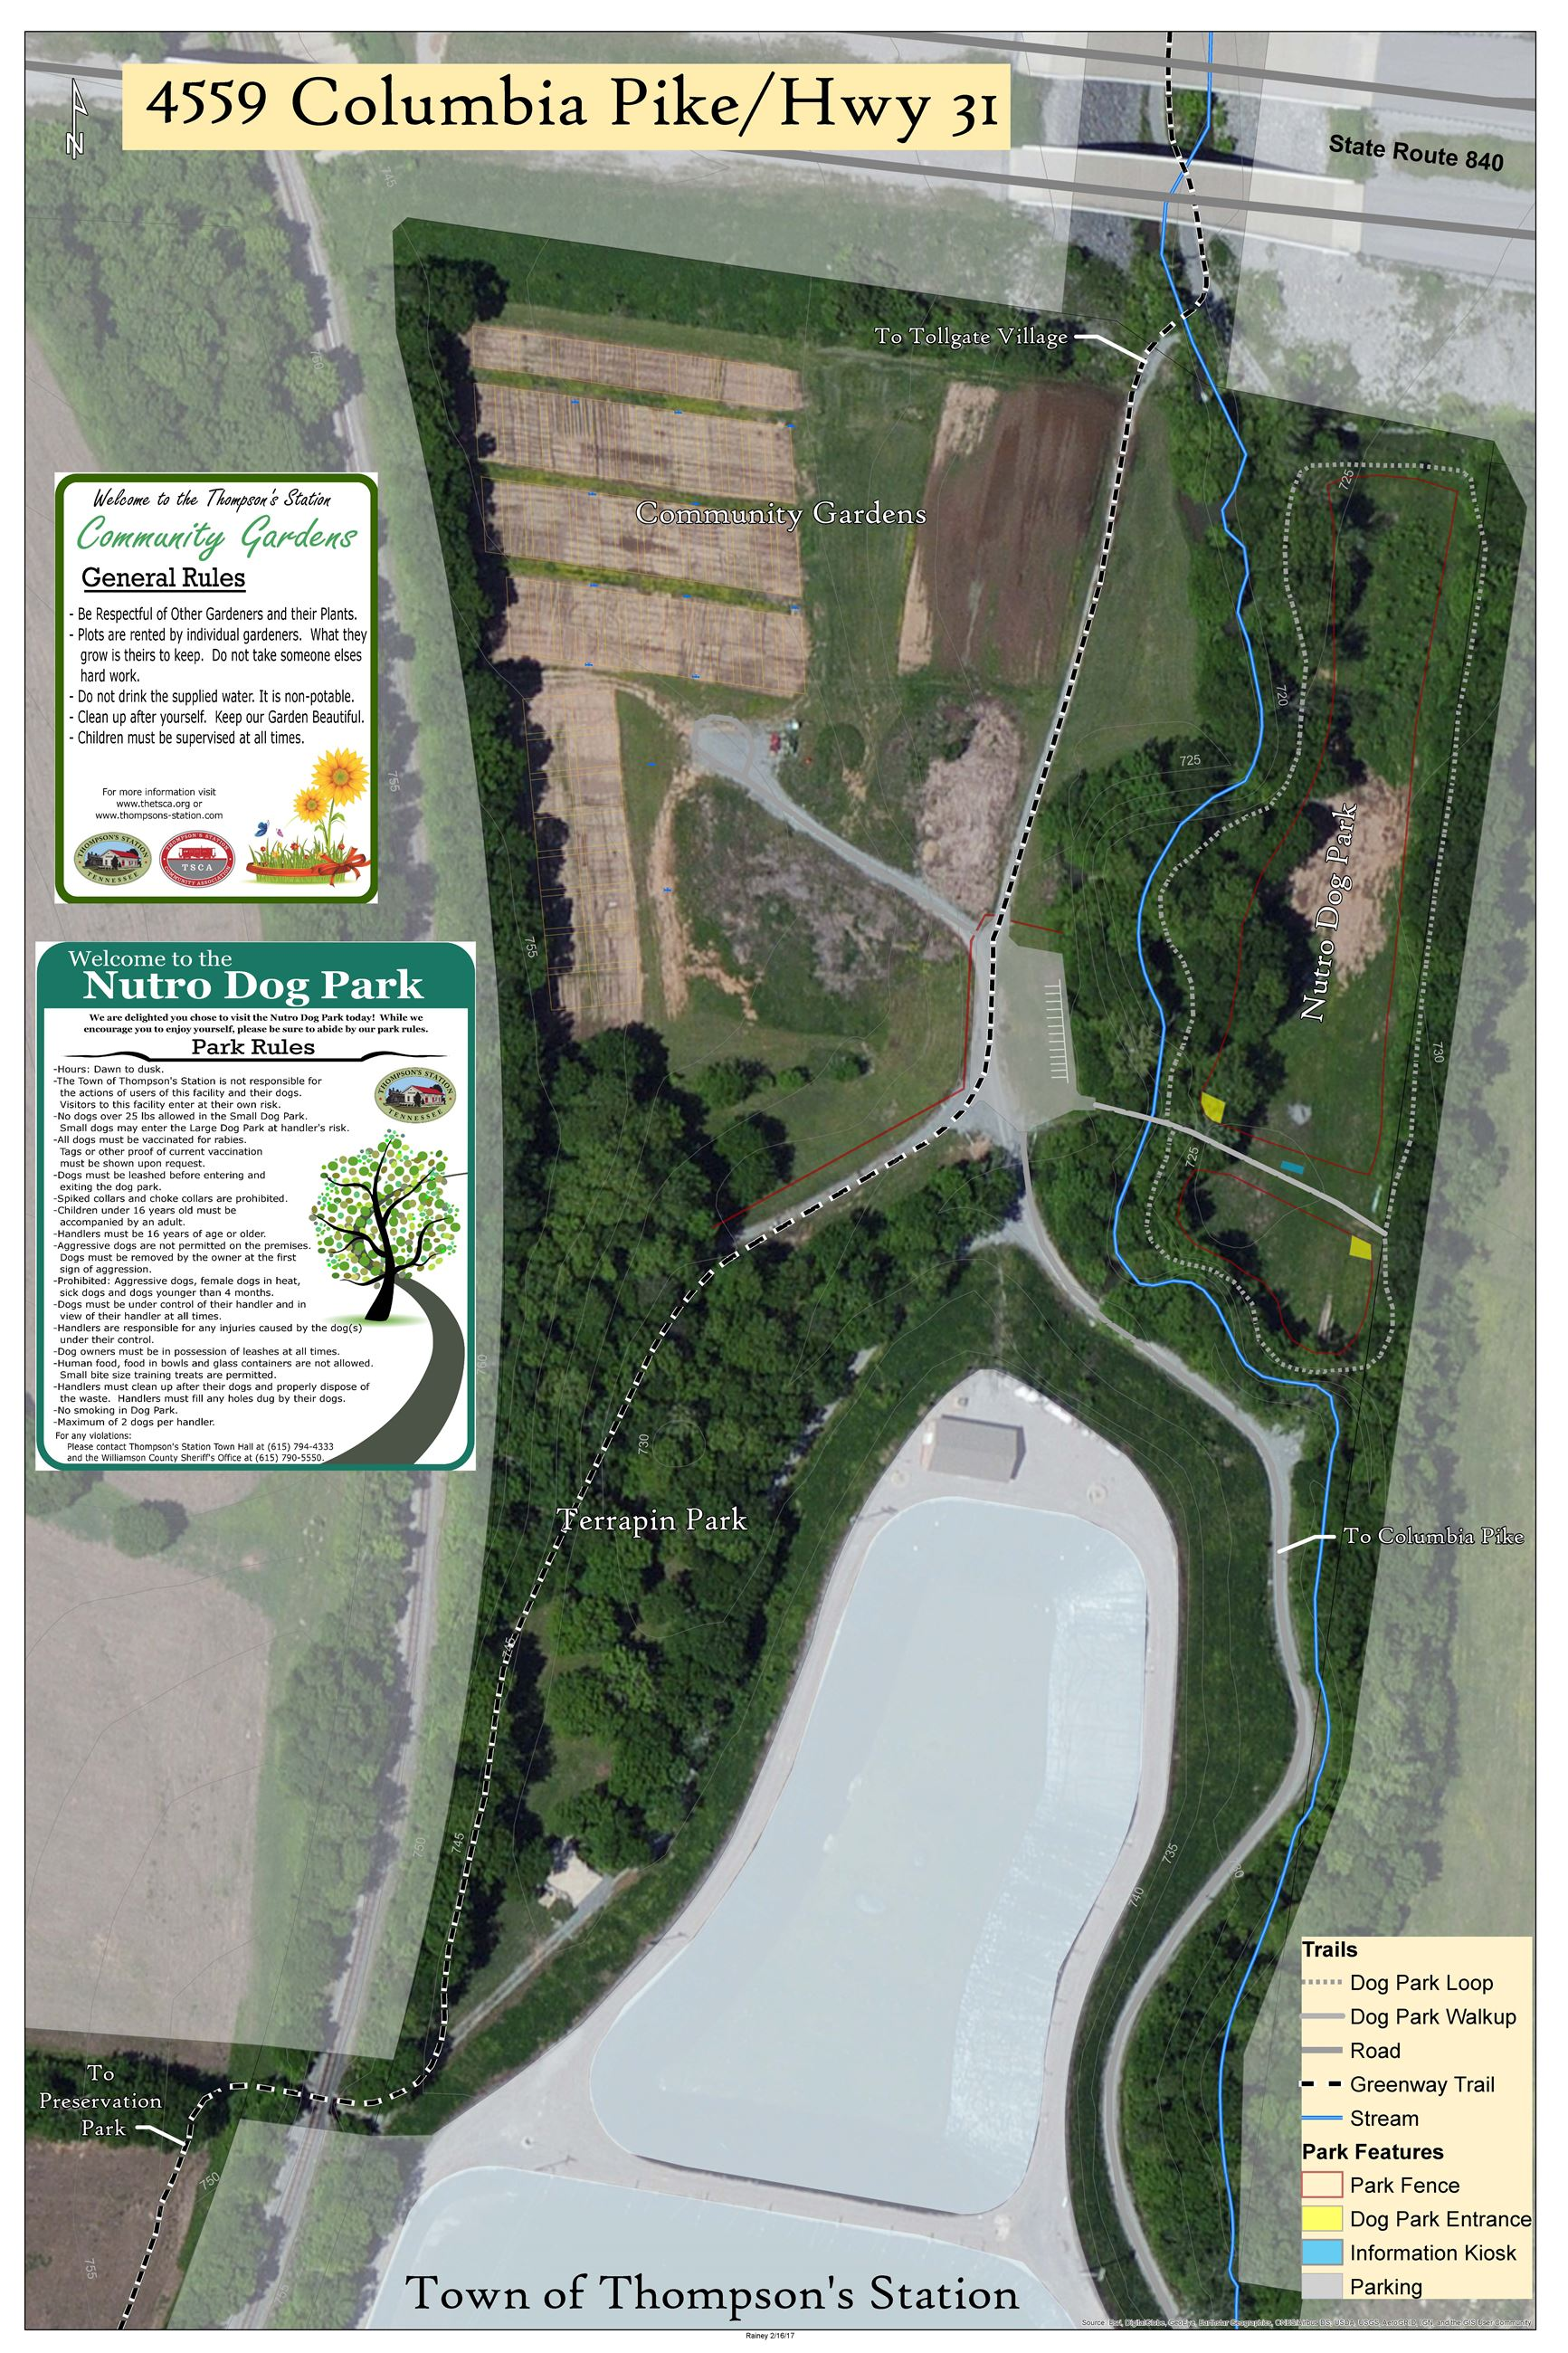 DogPark_CommGarden_Map_24x36_aerial_v2